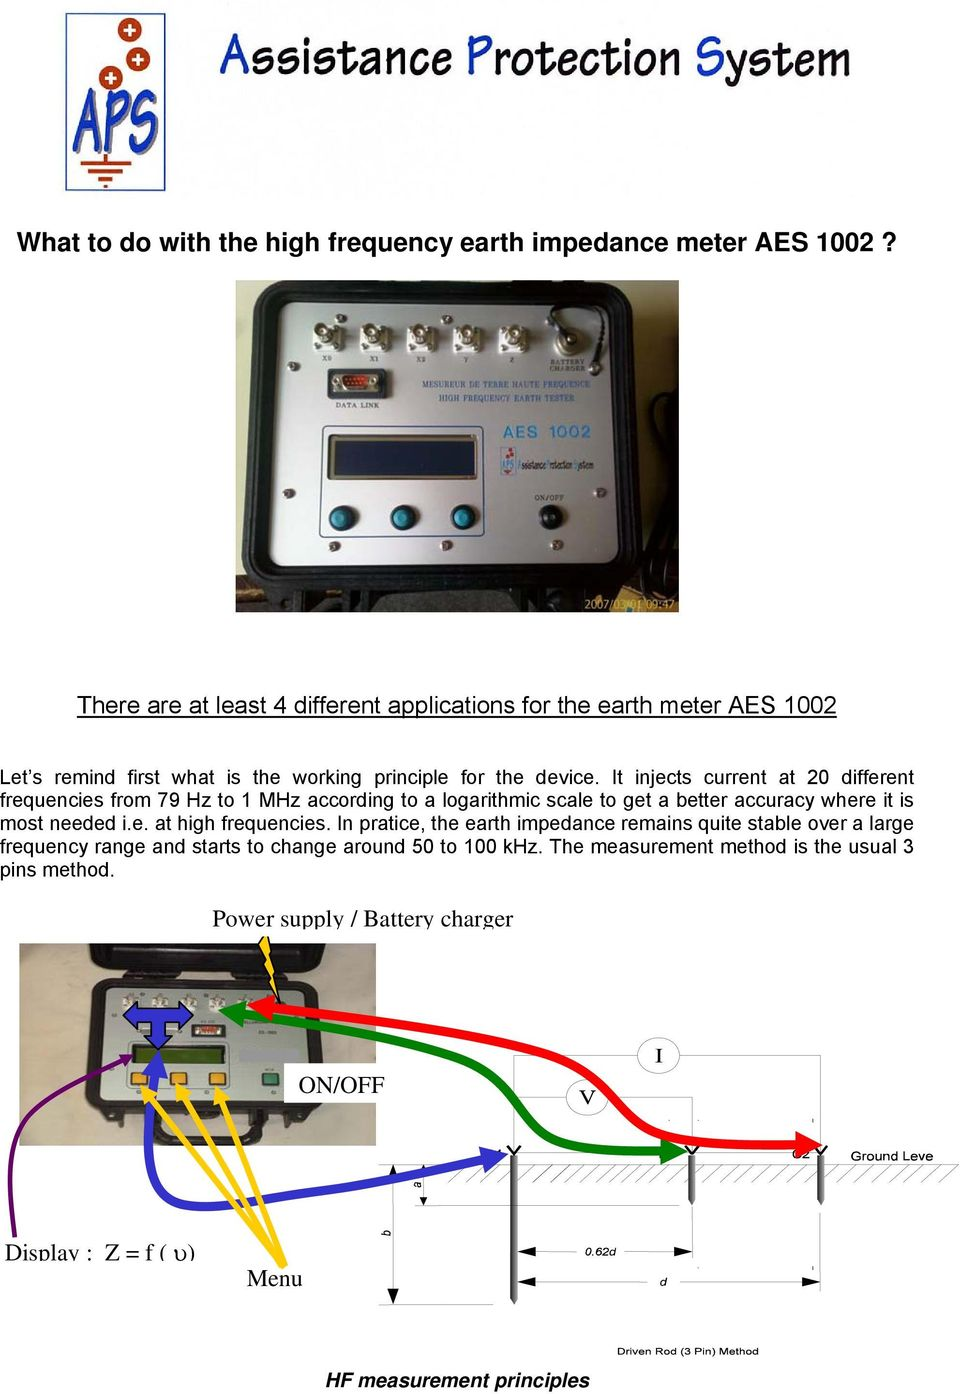 What To Do With The High Frequency Earth Impedance Meter Aes 1002 Pdf 1hz 1mhz Digital Display It Injects Current At 20 Different Frequencies From 79 Hz 1 Mhz According A